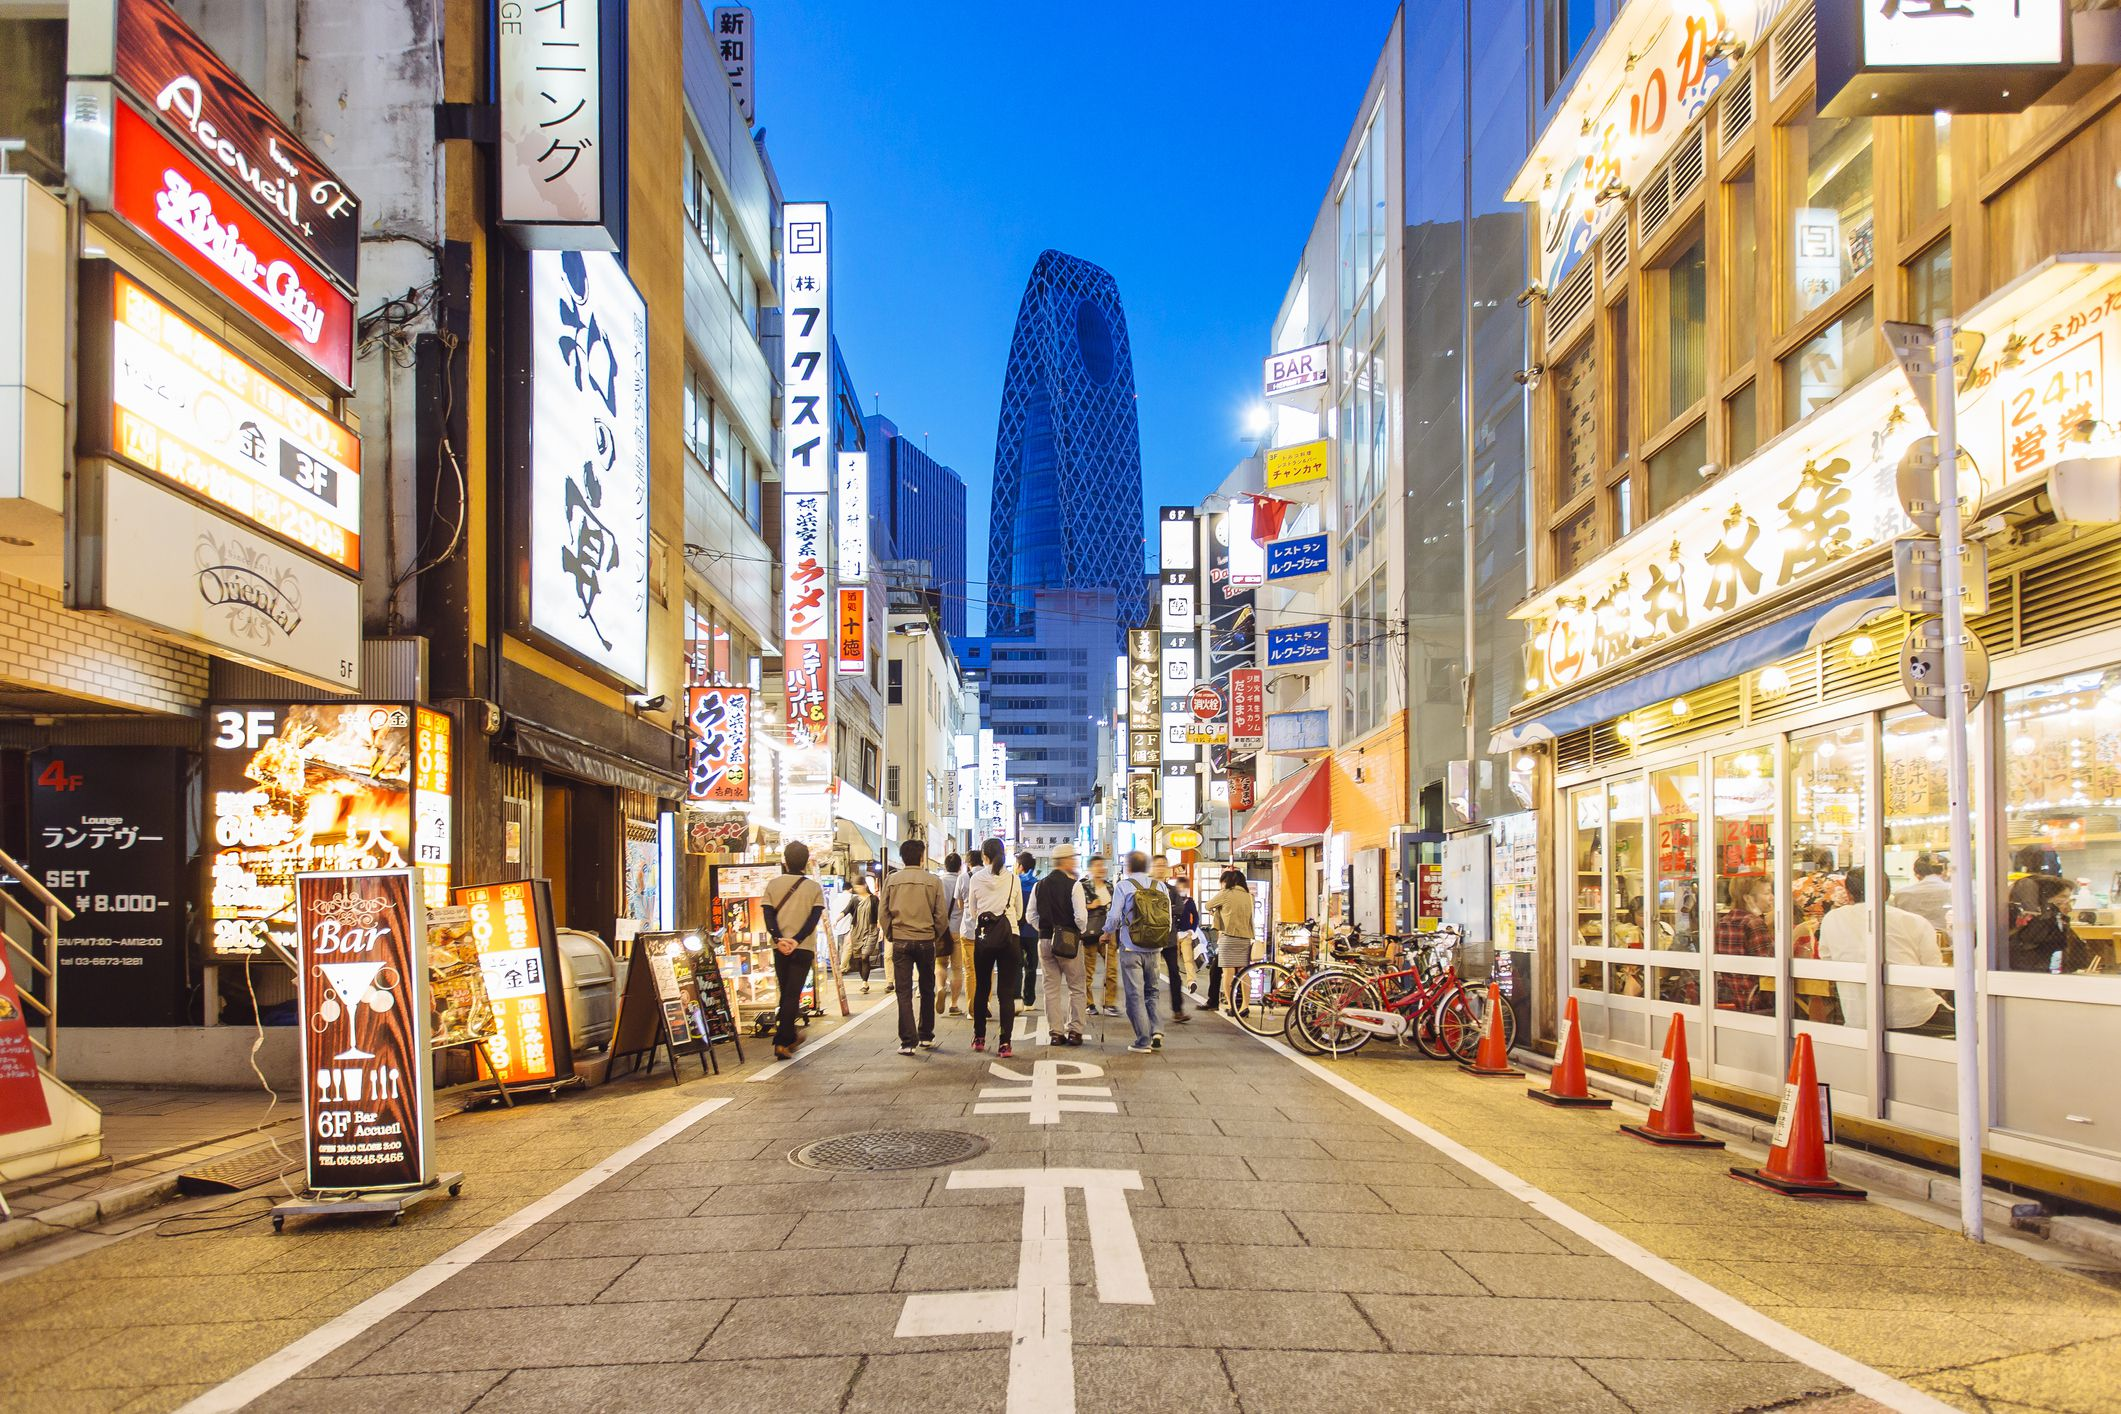 Street with shops and restaurants in Shinjuku district in Tokyo, Japan